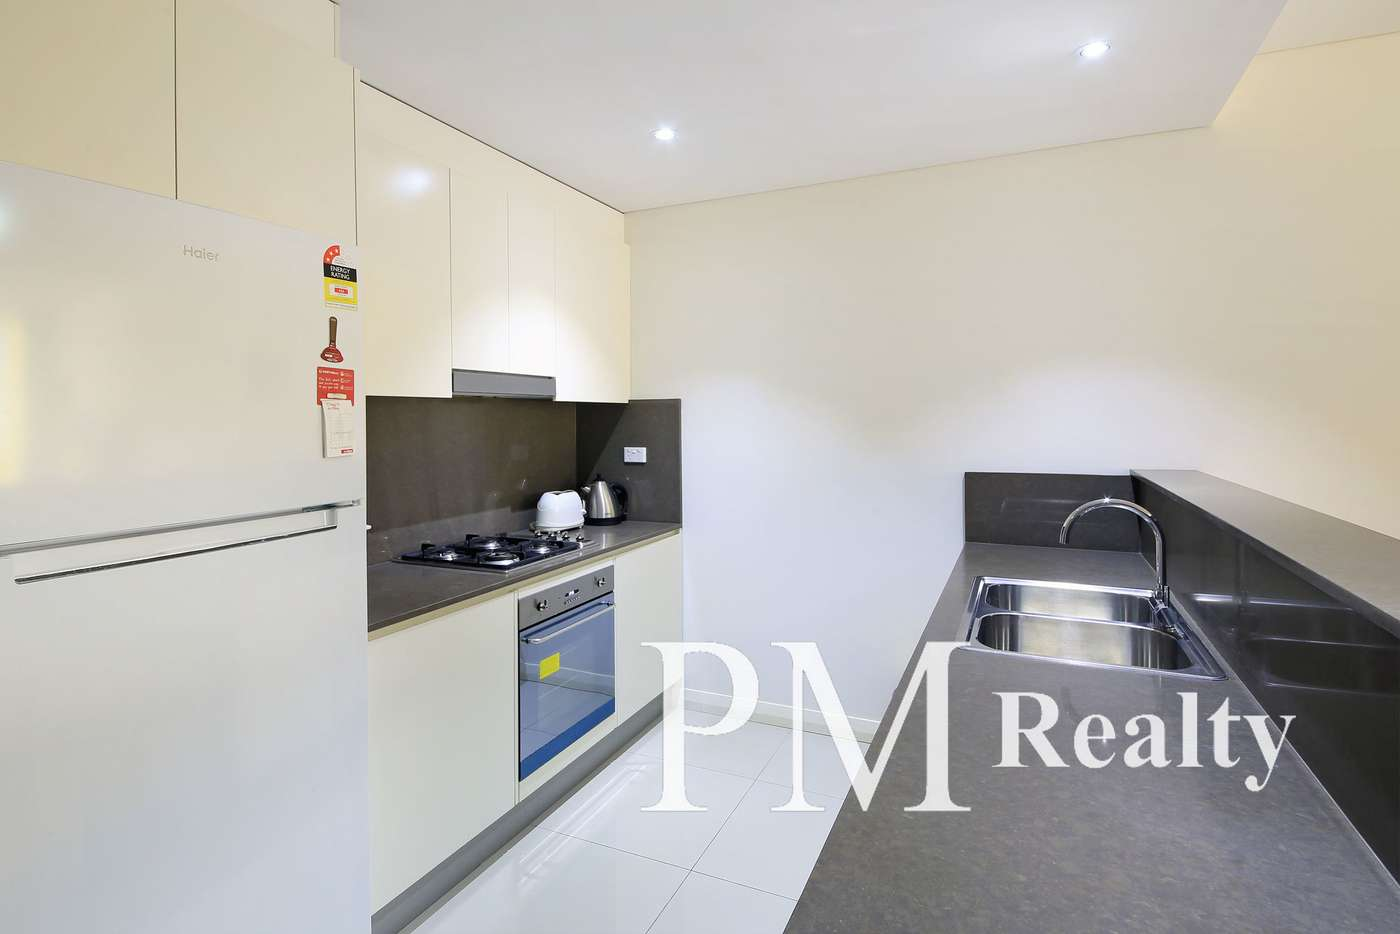 Main view of Homely apartment listing, 105/1 Church Ave, Mascot NSW 2020